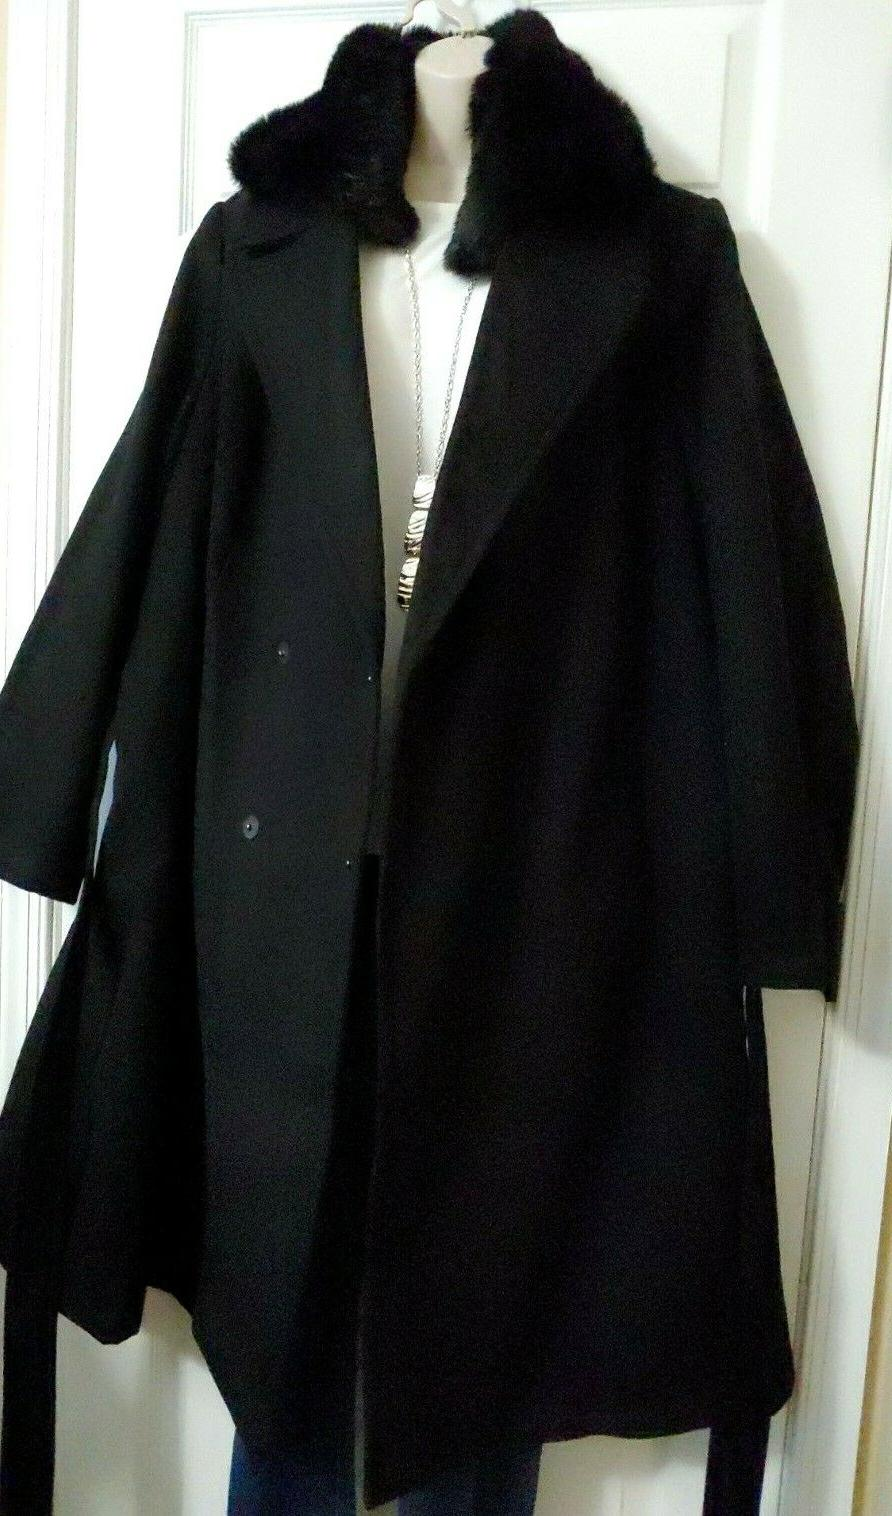 Lane Bryant NWT DEAL of the DAY Black Coat Pockets 22/24